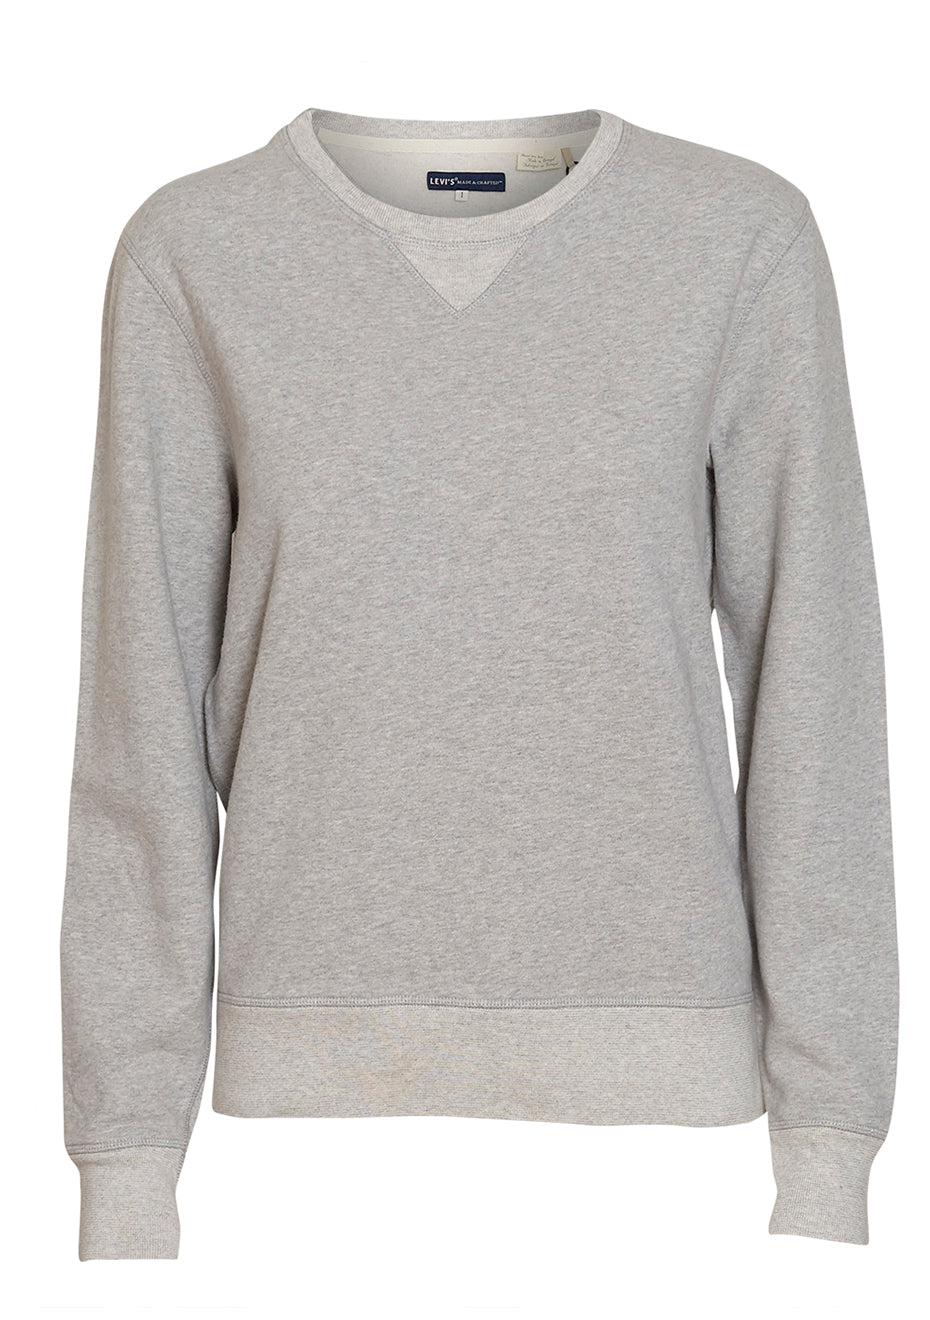 Made & Crafted Grey Sweatshirt